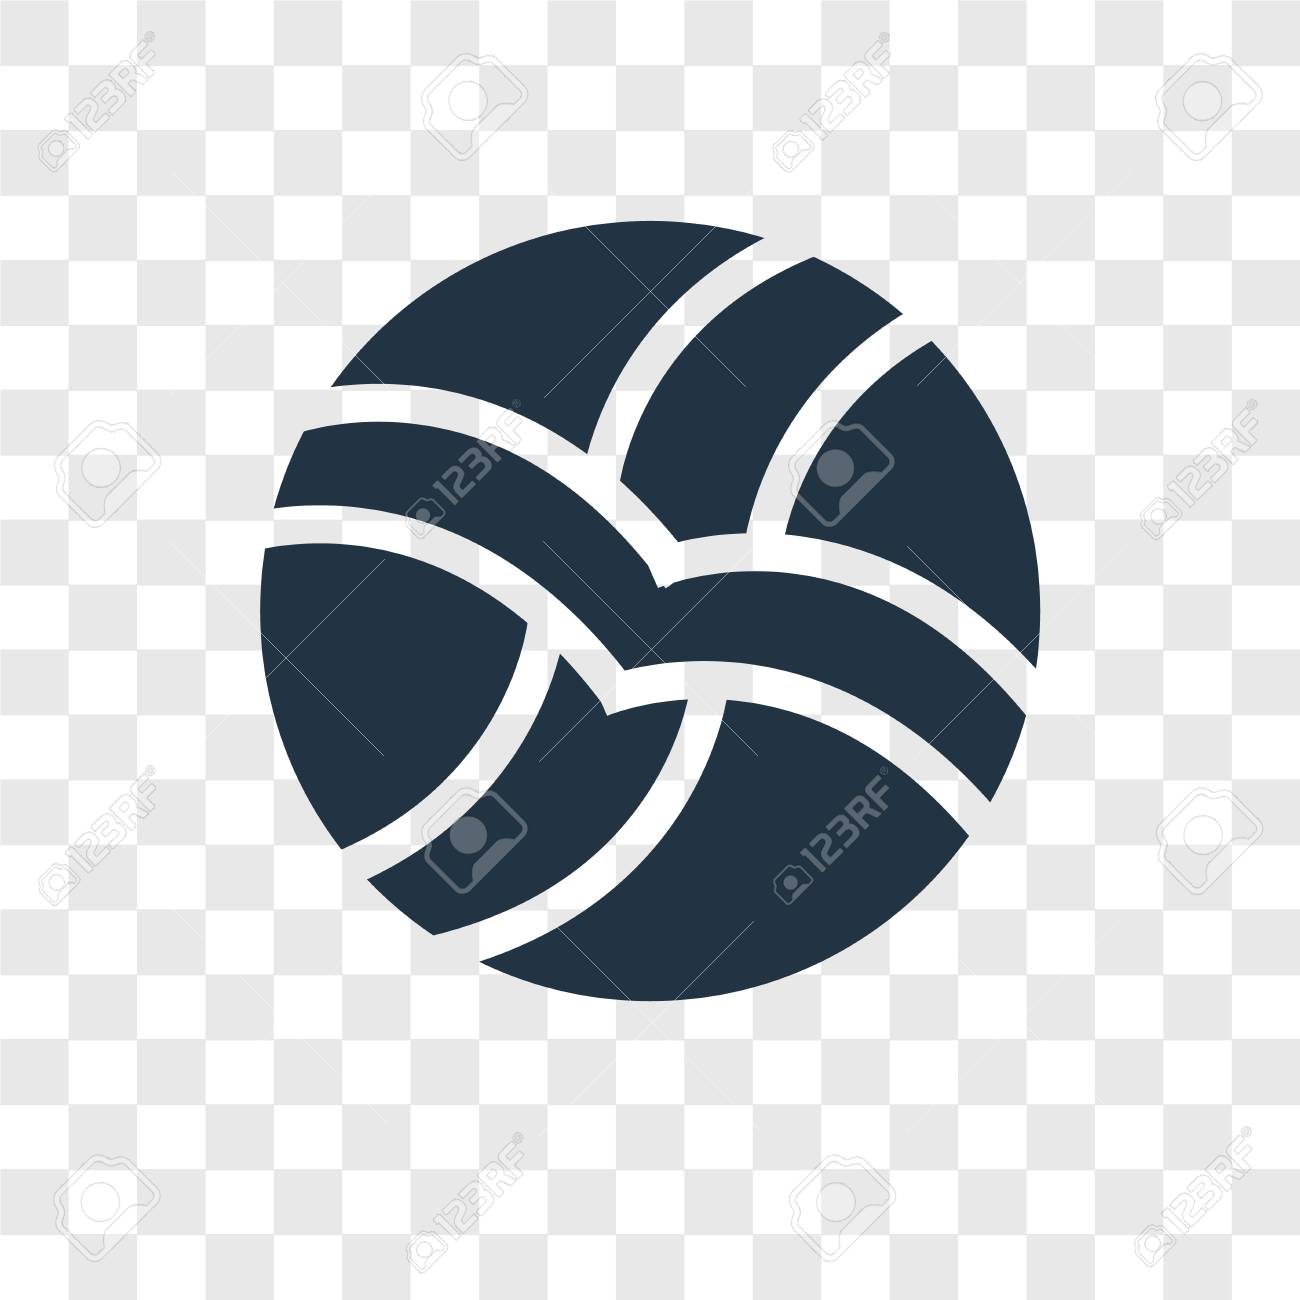 Volleyball Vector Icon Isolated On Transparent Background Volleyball Royalty Free Cliparts Vectors And Stock Illustration Image 112442222